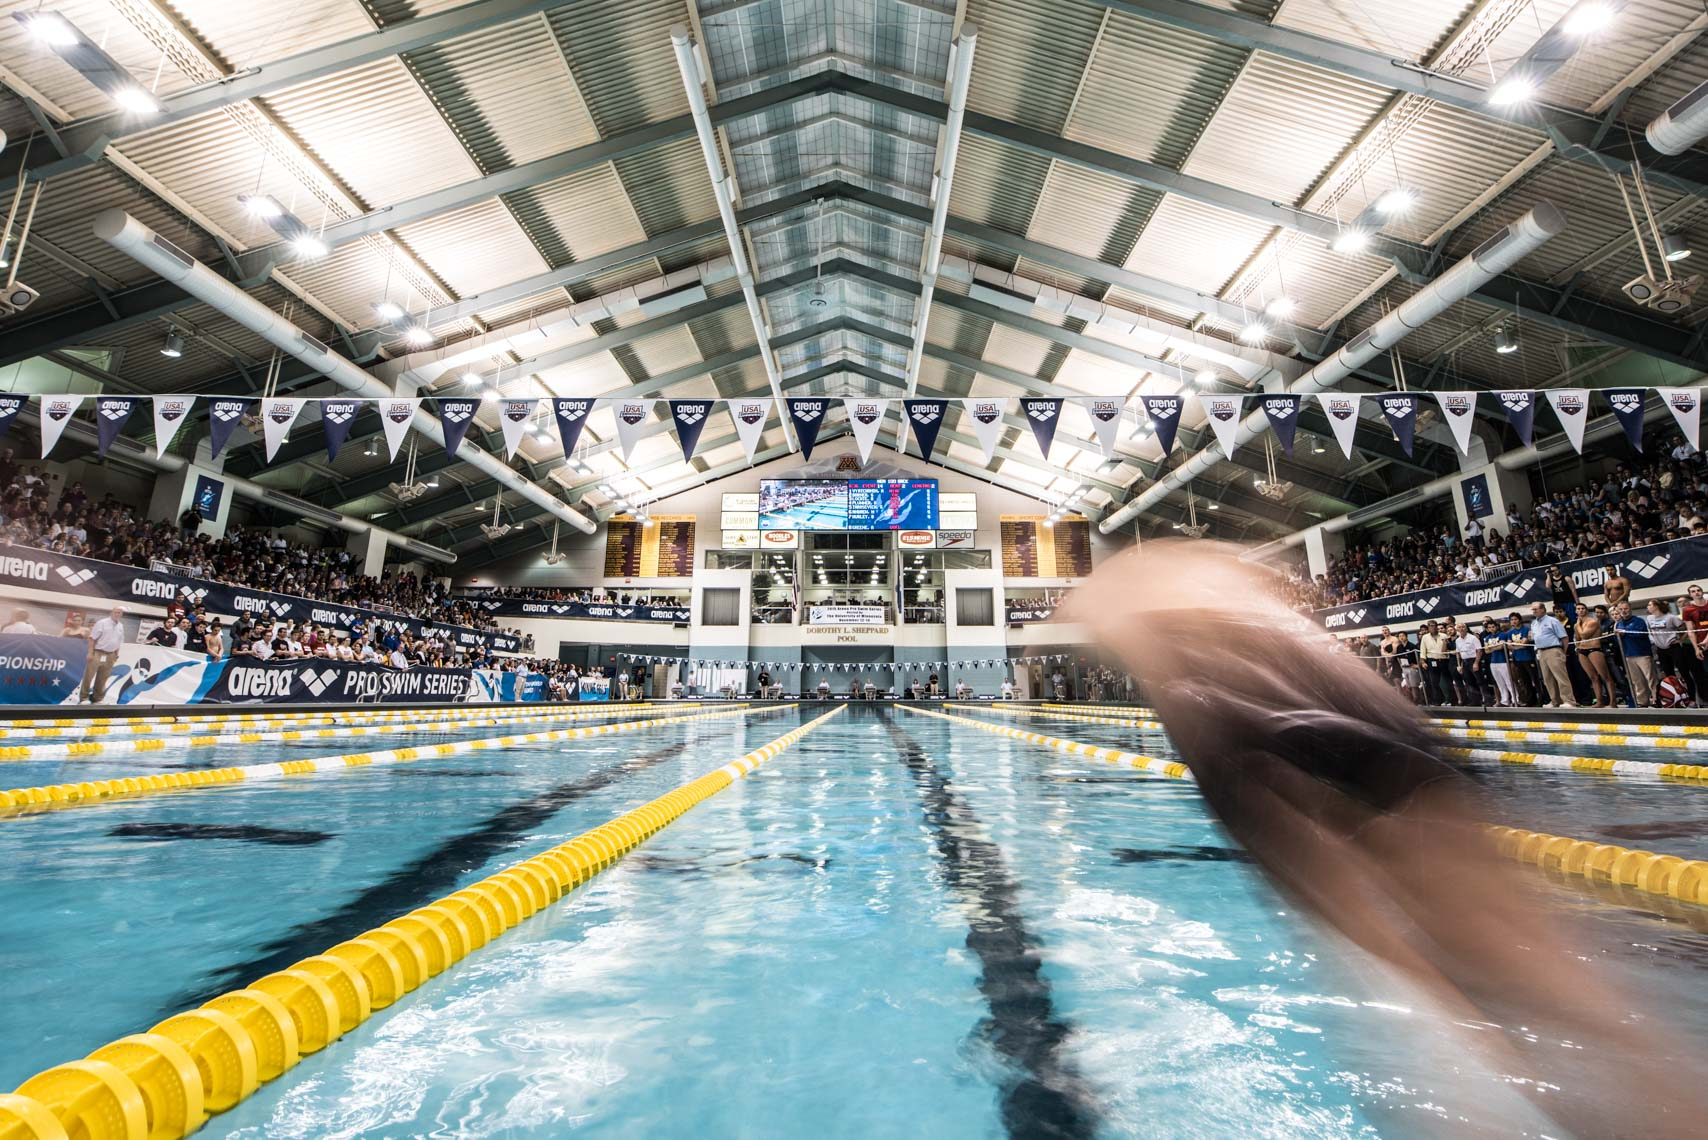 backstroke blur start stock by Mike Lewis